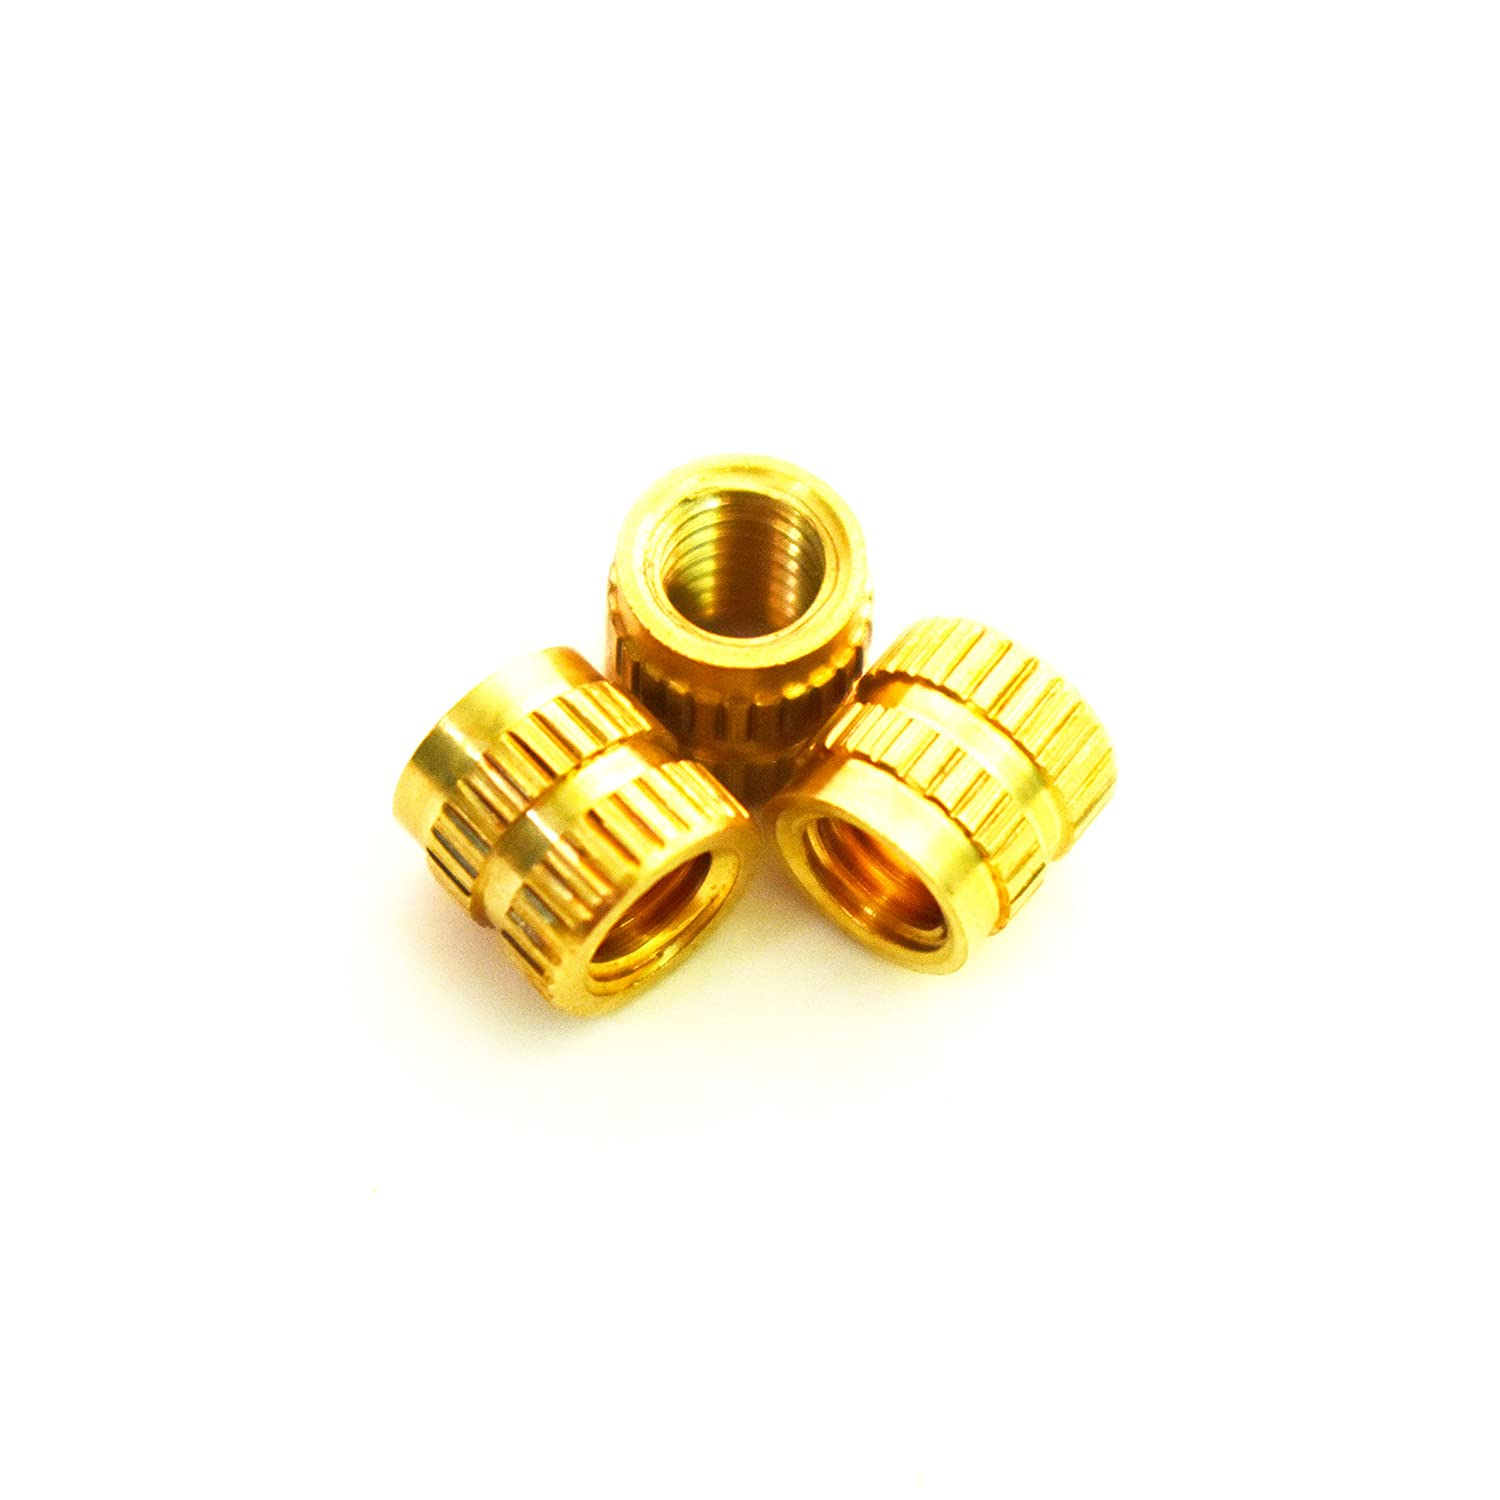 7.1 mm Length 7.1mm OD J/&J Products 20 pcs J /& J Products Female M5 Thread Press Fitting or Injection Molding Type M5 Brass Insert 20pcs